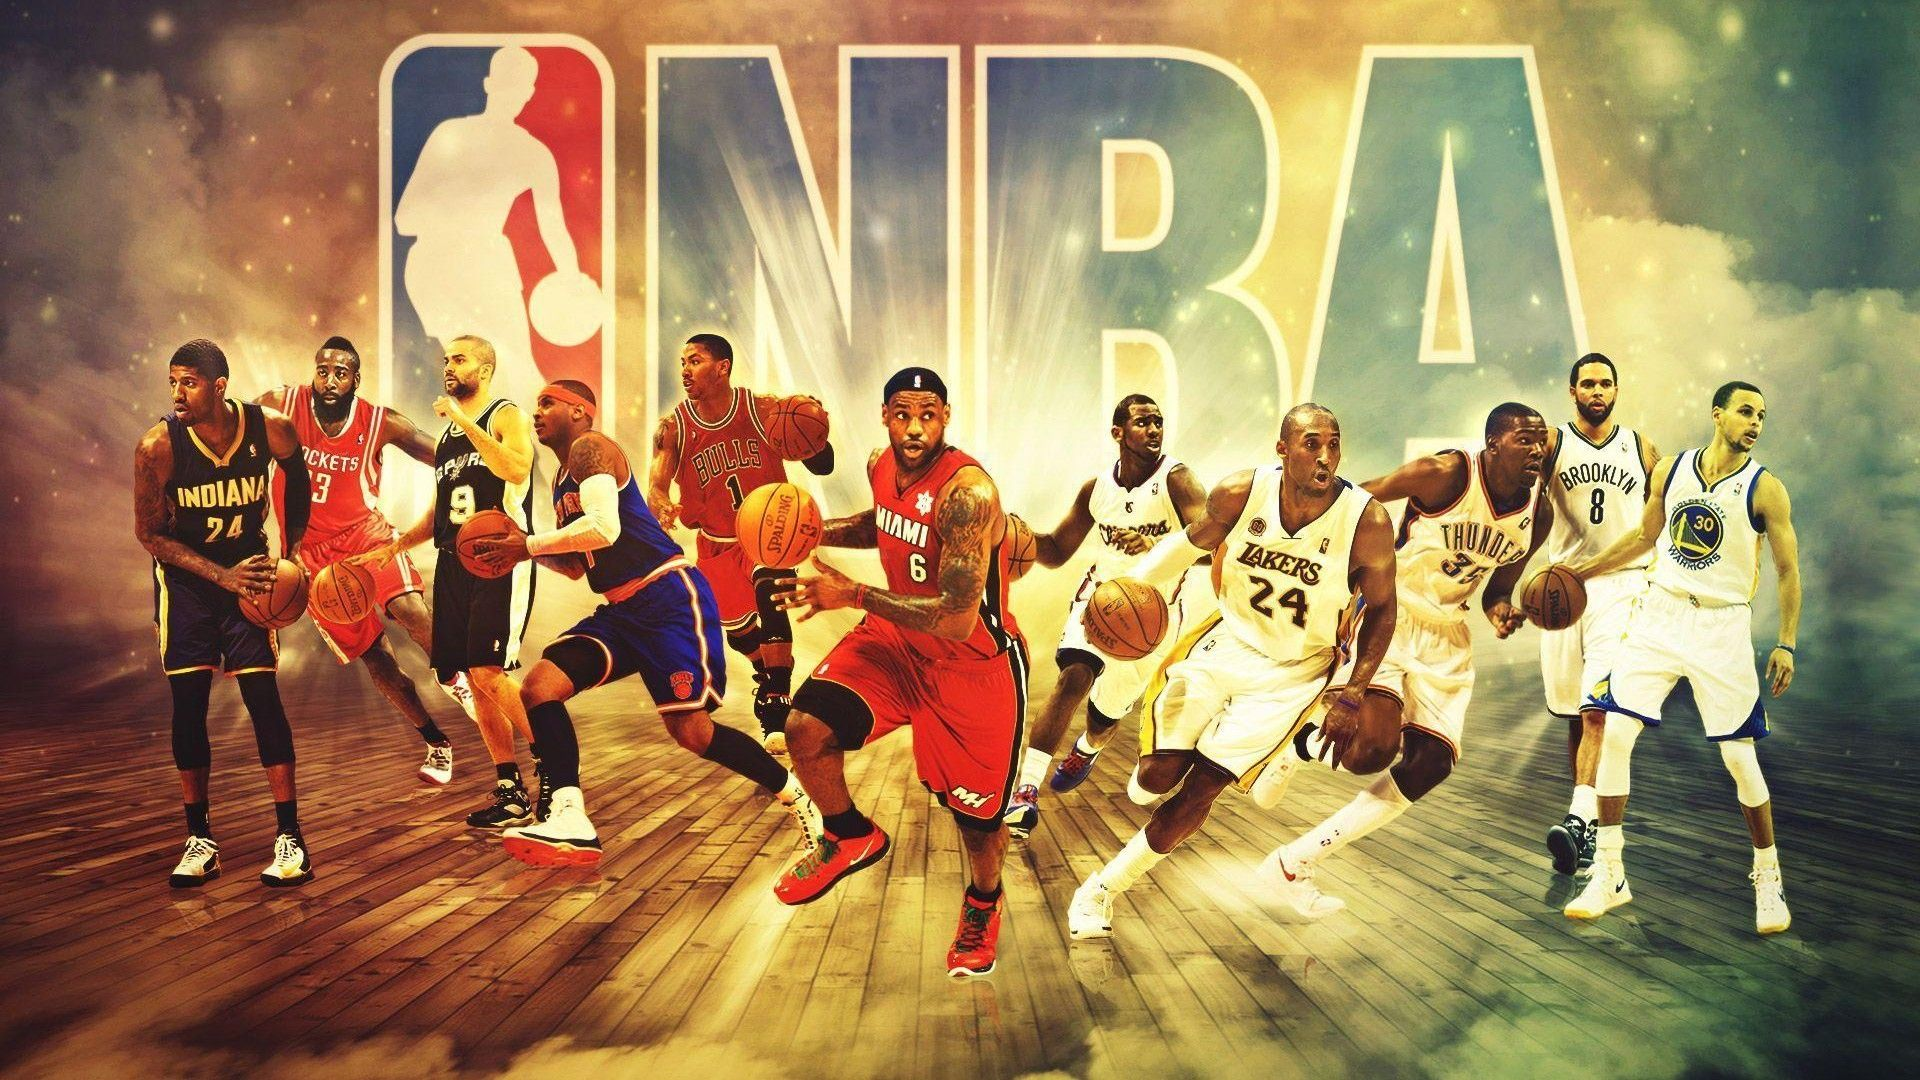 Hd Nba Backgrounds In 2020 Nba Wallpapers Watch Nba Nba Background